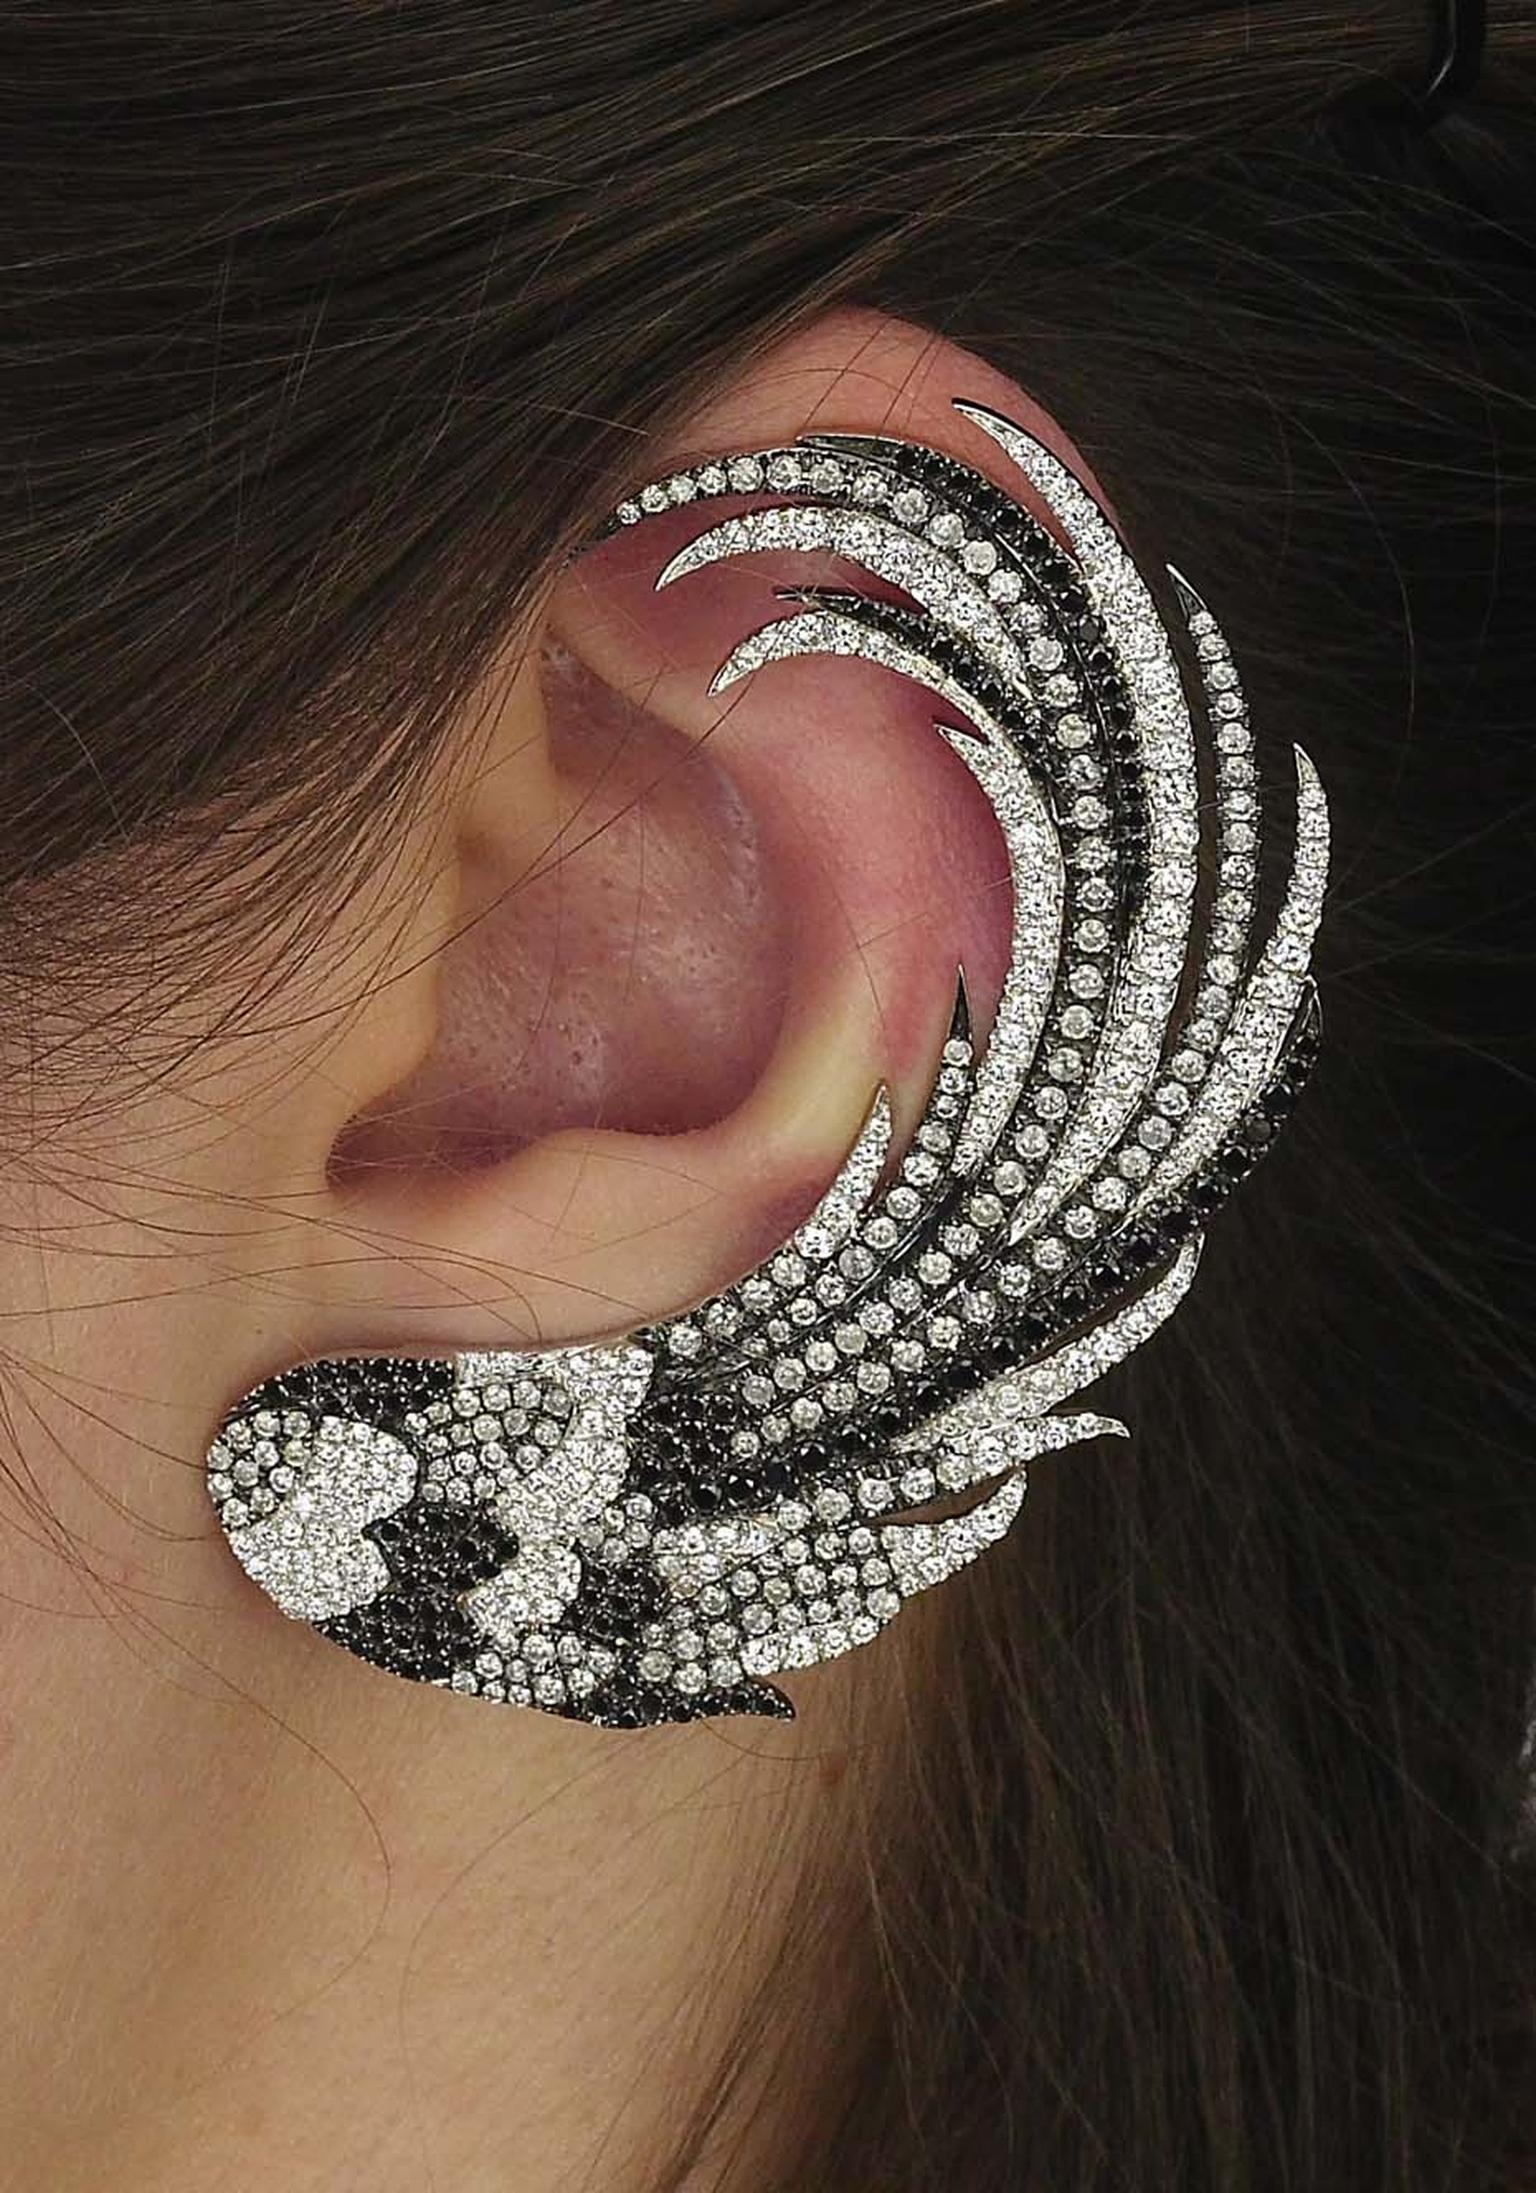 Colette Blue Drift white and black gold Single Wing ear cuff with white, grey and black diamonds ($15,350).